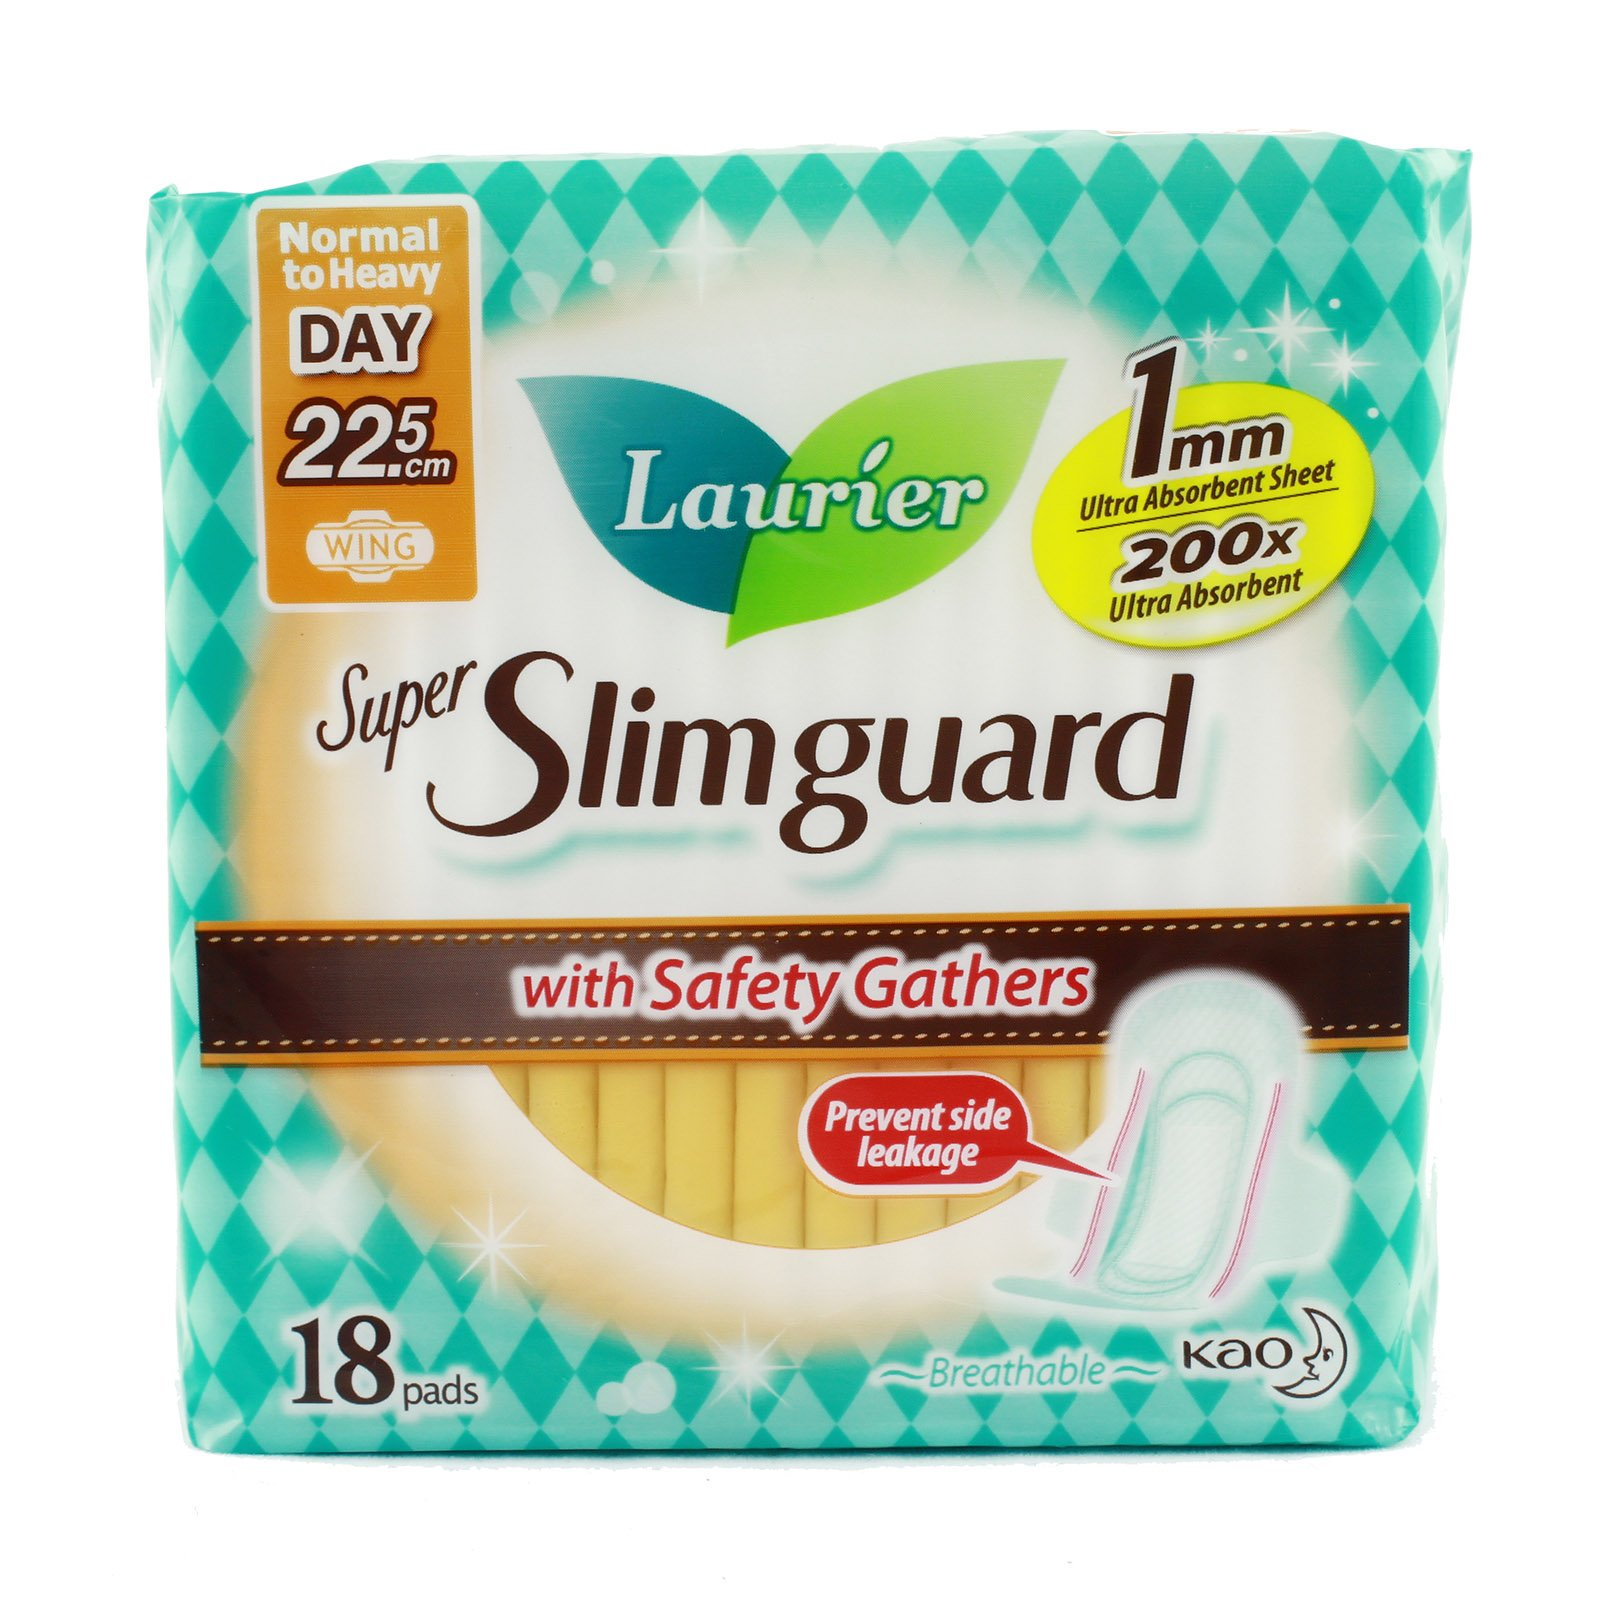 Buy Best Laurier Super Slimguard Day Wing Sanitary Pads Healthy Skin Night 35cm 6s 225cm